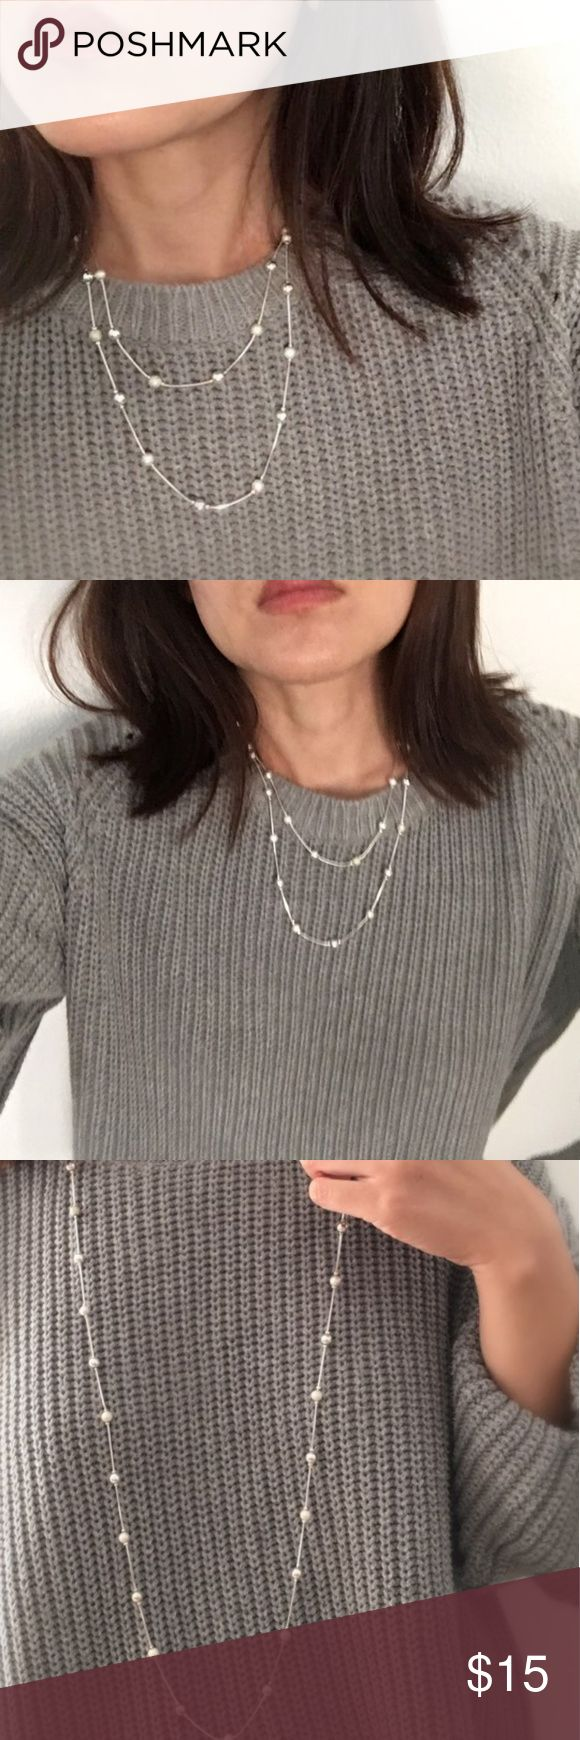 """Chic Modern Perfect Silver Long Necklace Elegant silver bead chain necklace. Length allows for you to choose it as a long necklace or wrap it to make it two. Shimmer and shine with sophisticated style this winter with this beautiful necklace! End to end length about 19 1/2"""" Jewelry Necklaces"""